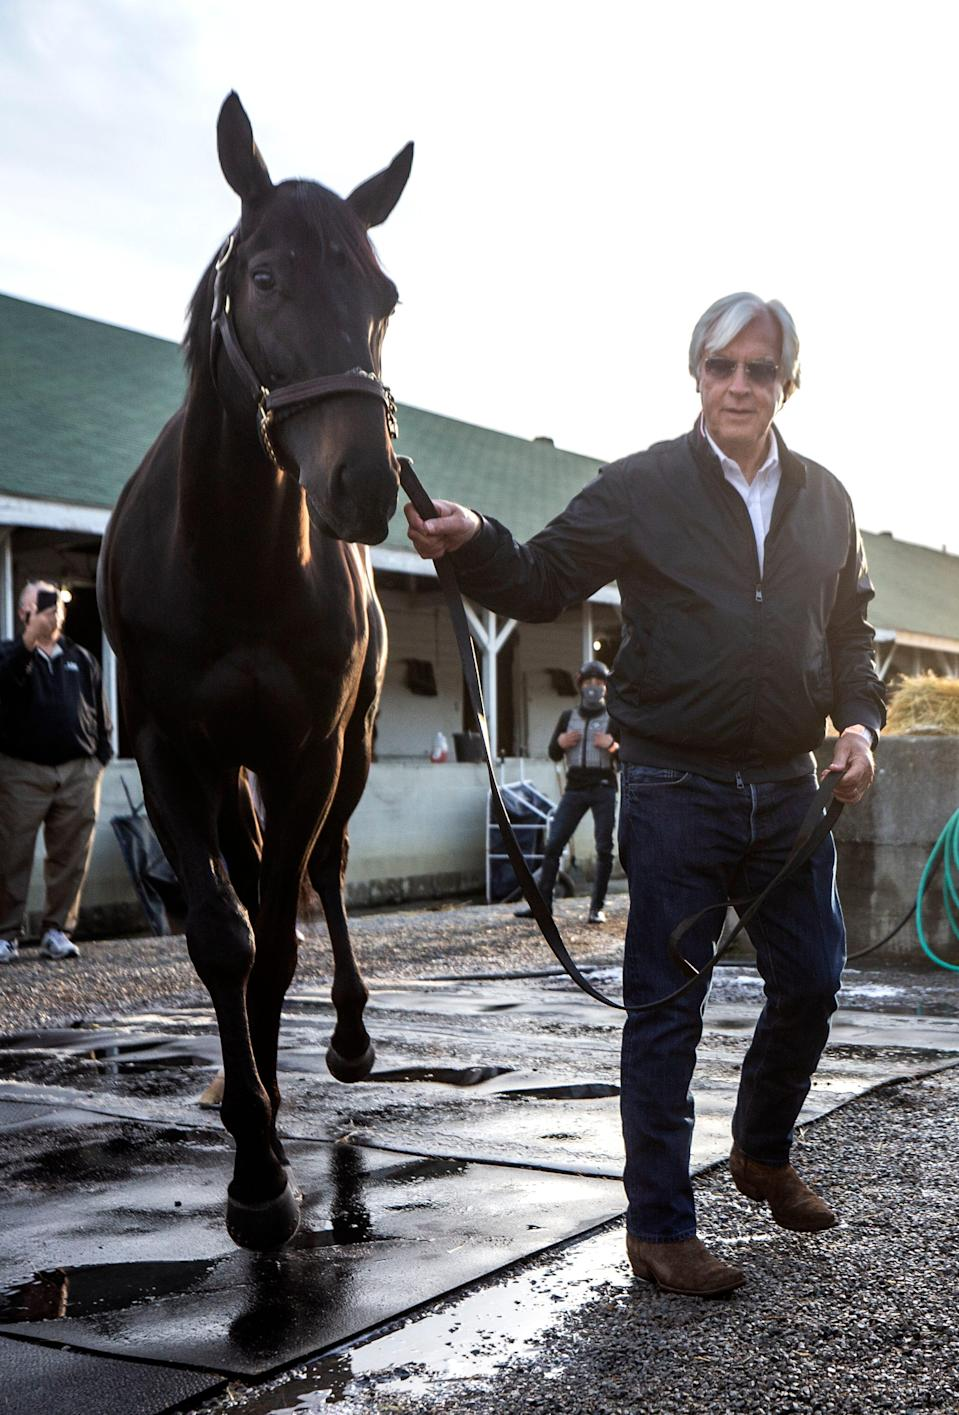 Trainer Bob Baffert leads Medina Spirit back to his stall on the morning after winning his seventh Kentucky Derby with the horse. One week later it was announced that Medina Spirit tested positive for an abundance of an anti-inflammatory drug following the race.